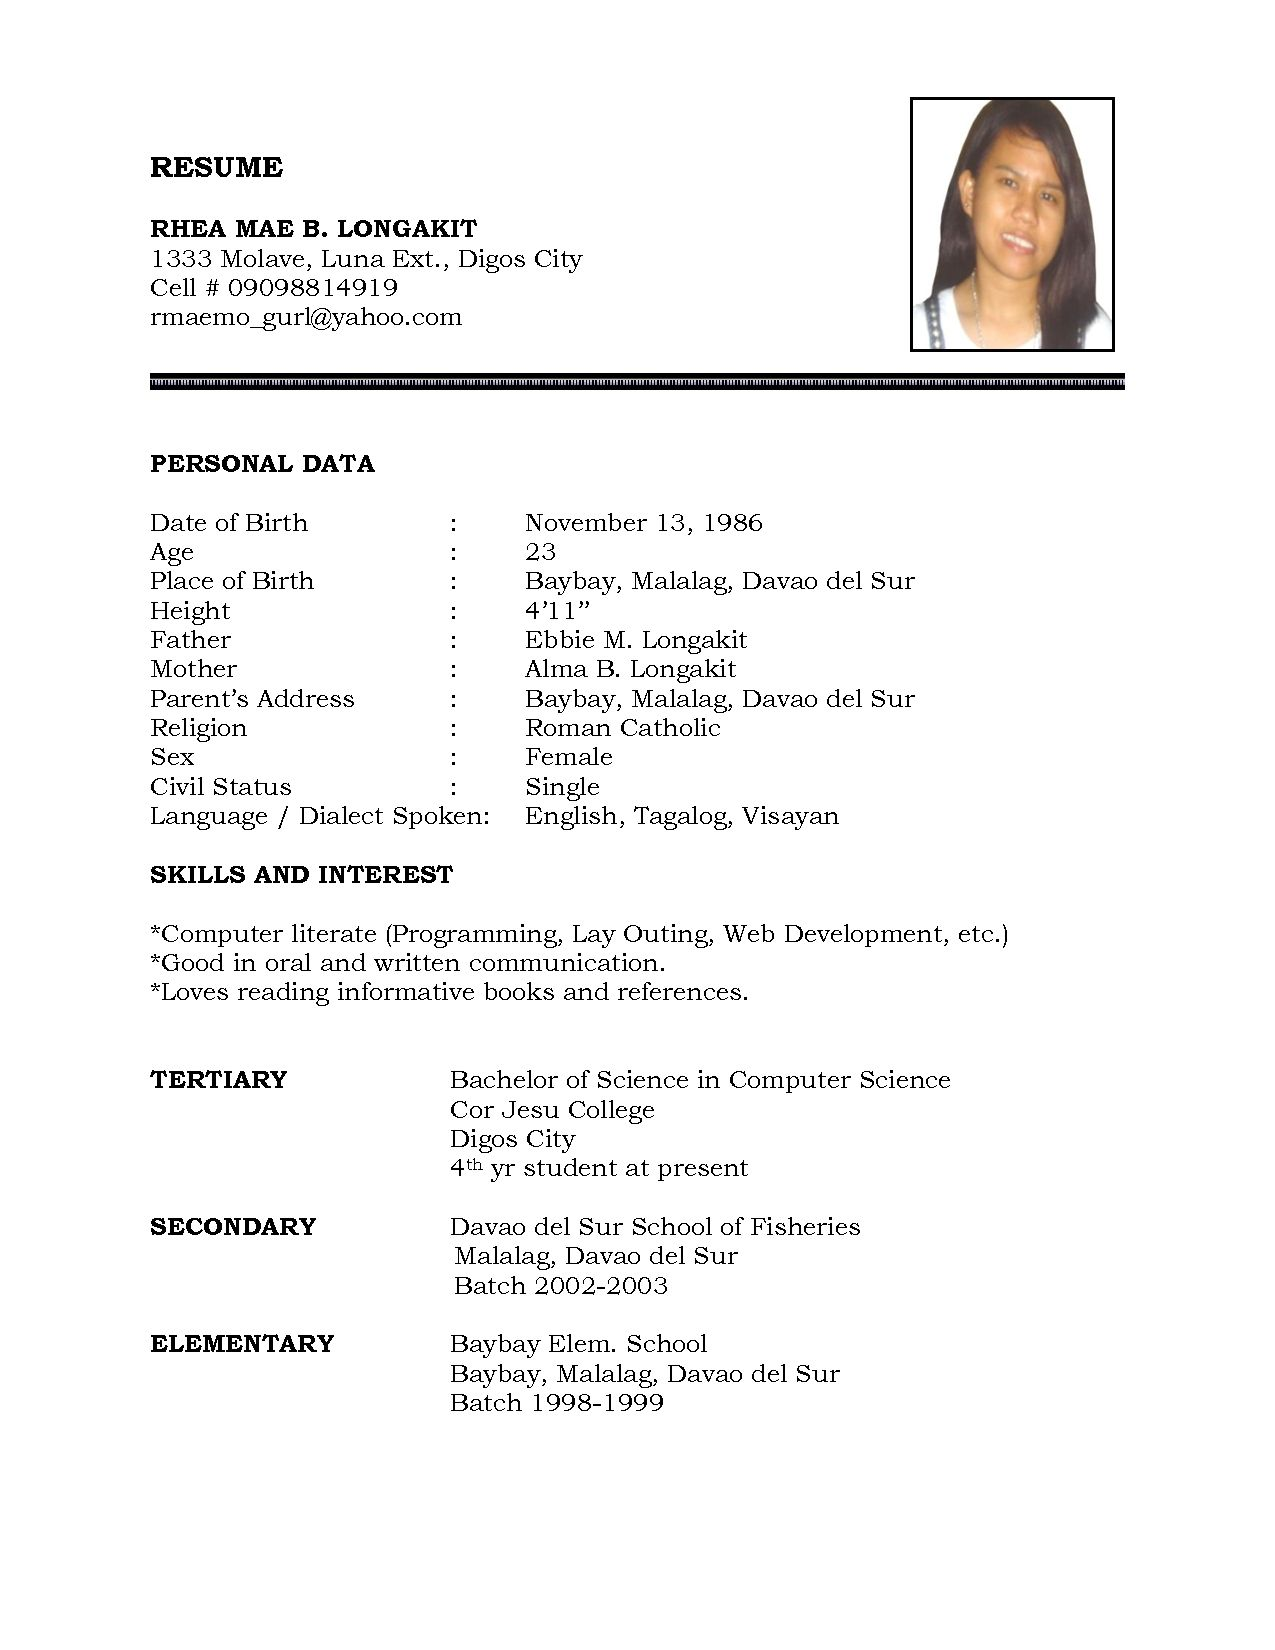 Resume Examples For Job Free Download